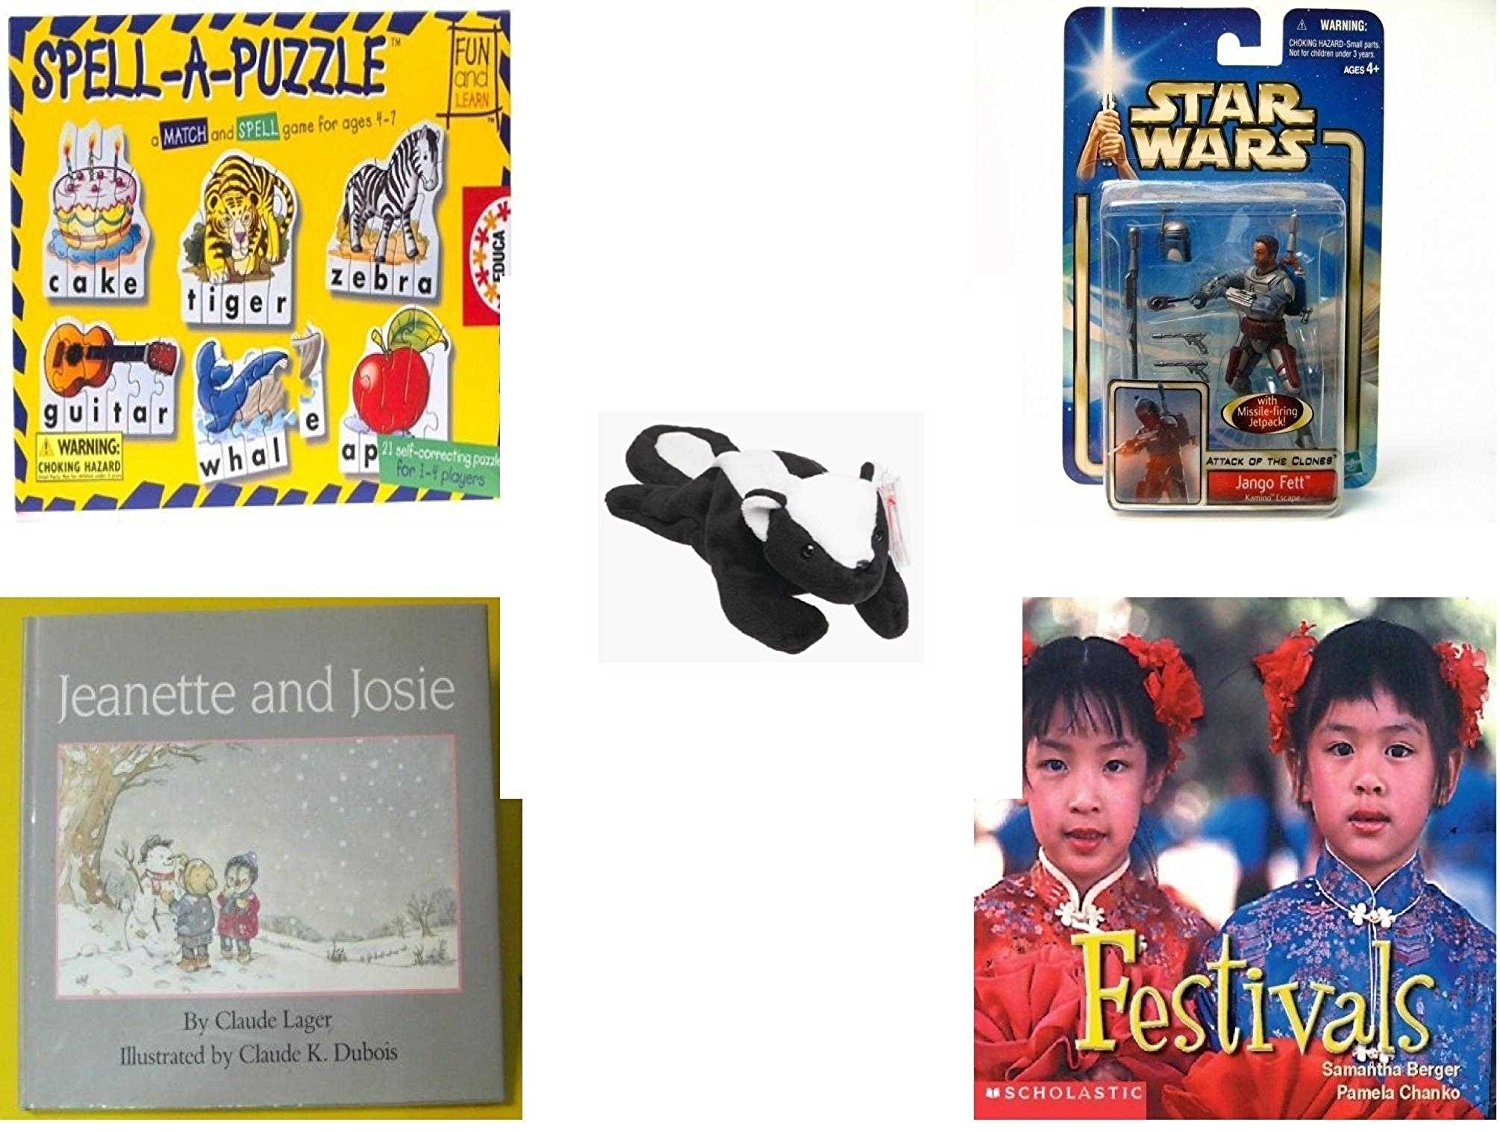 Children's Gift Bundle - Ages 3-5 [5 Piece] - Spell A Puzzle Game - Star Wars Jango Fett Action Figure Toy - TY Beanie Baby - STINKY the Skunk - Jeanette and Josie Hardcover Book - Festivals (Social